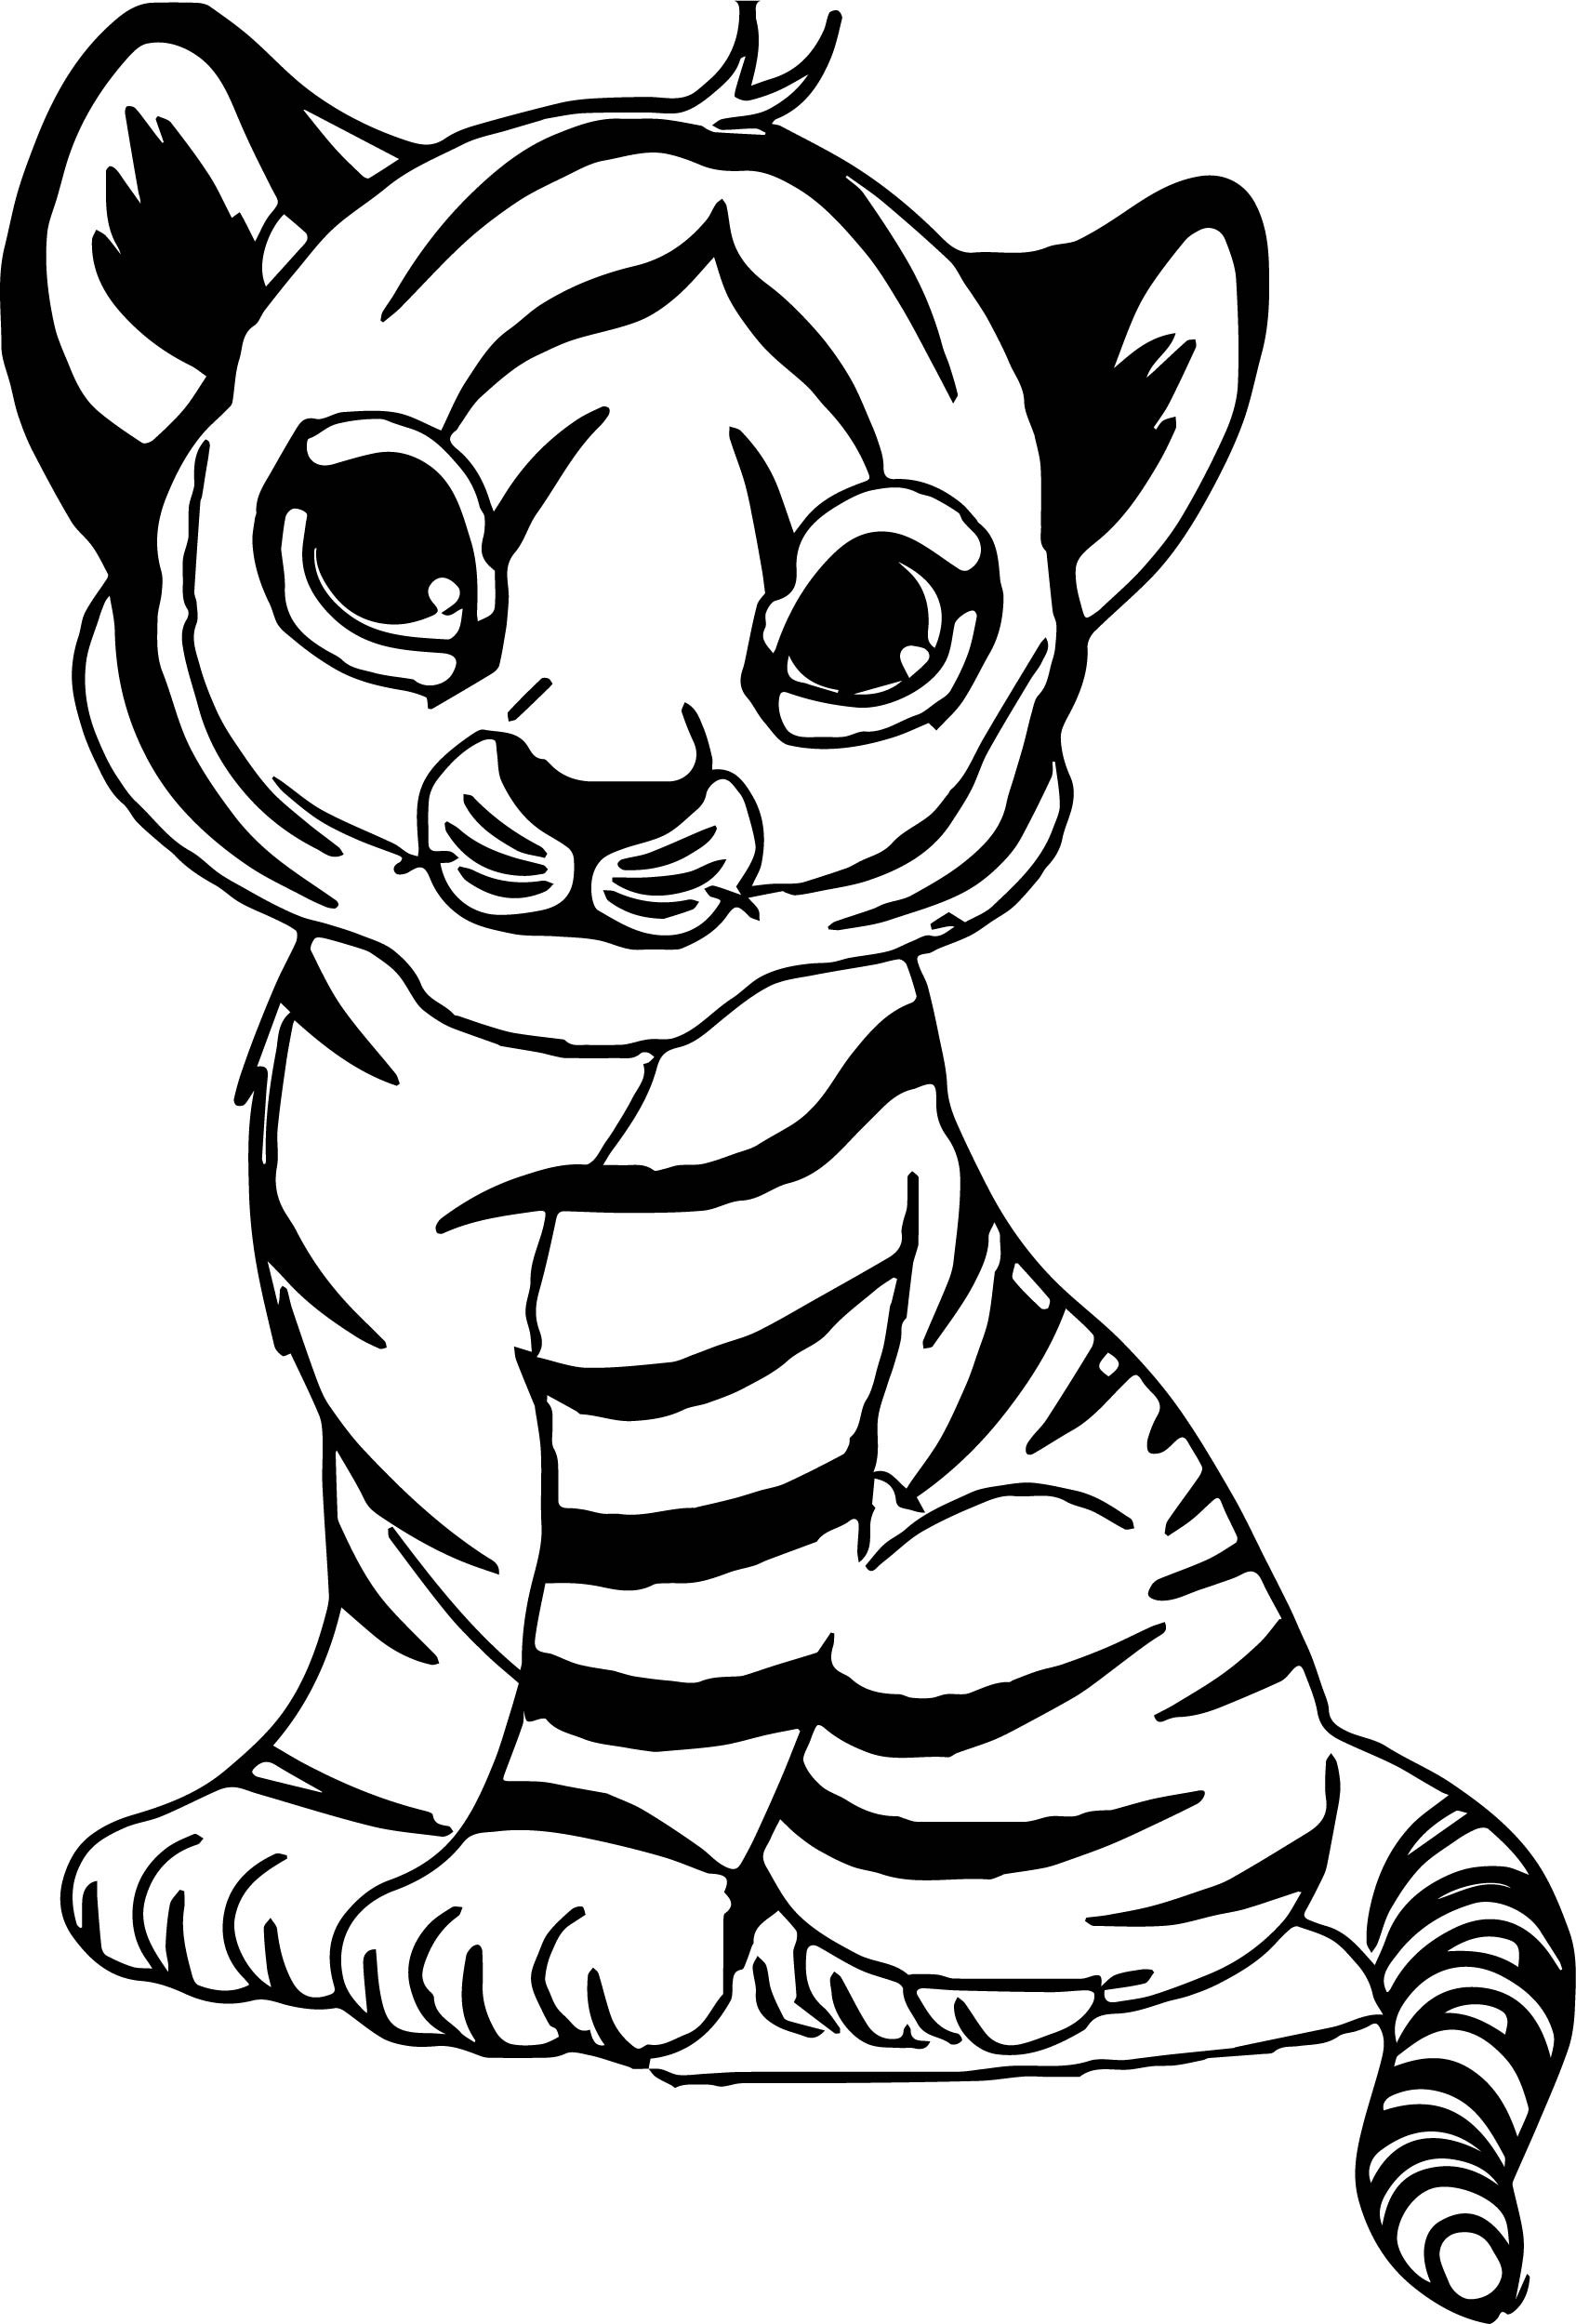 Cute Baby Tiger Coloring Pages  Cute Baby Tiger Coloring Page